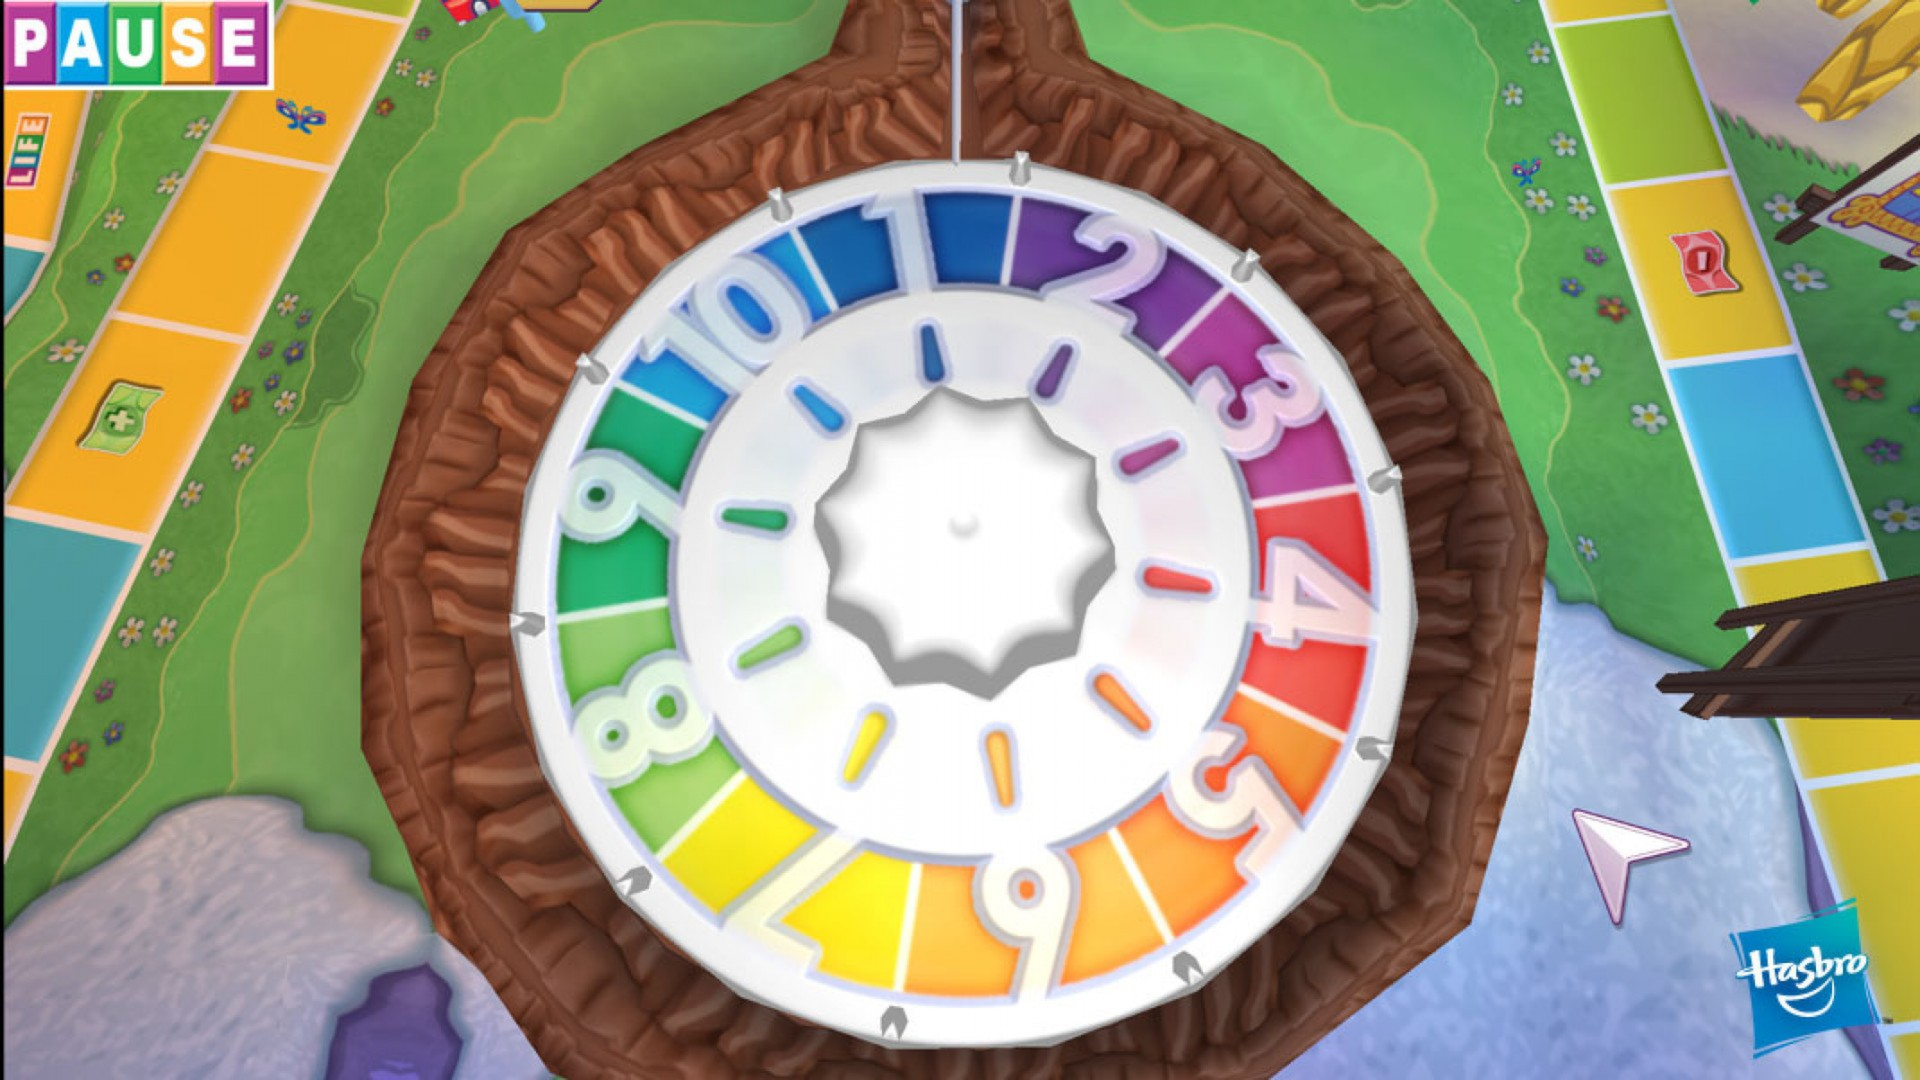 The game of life full free download android